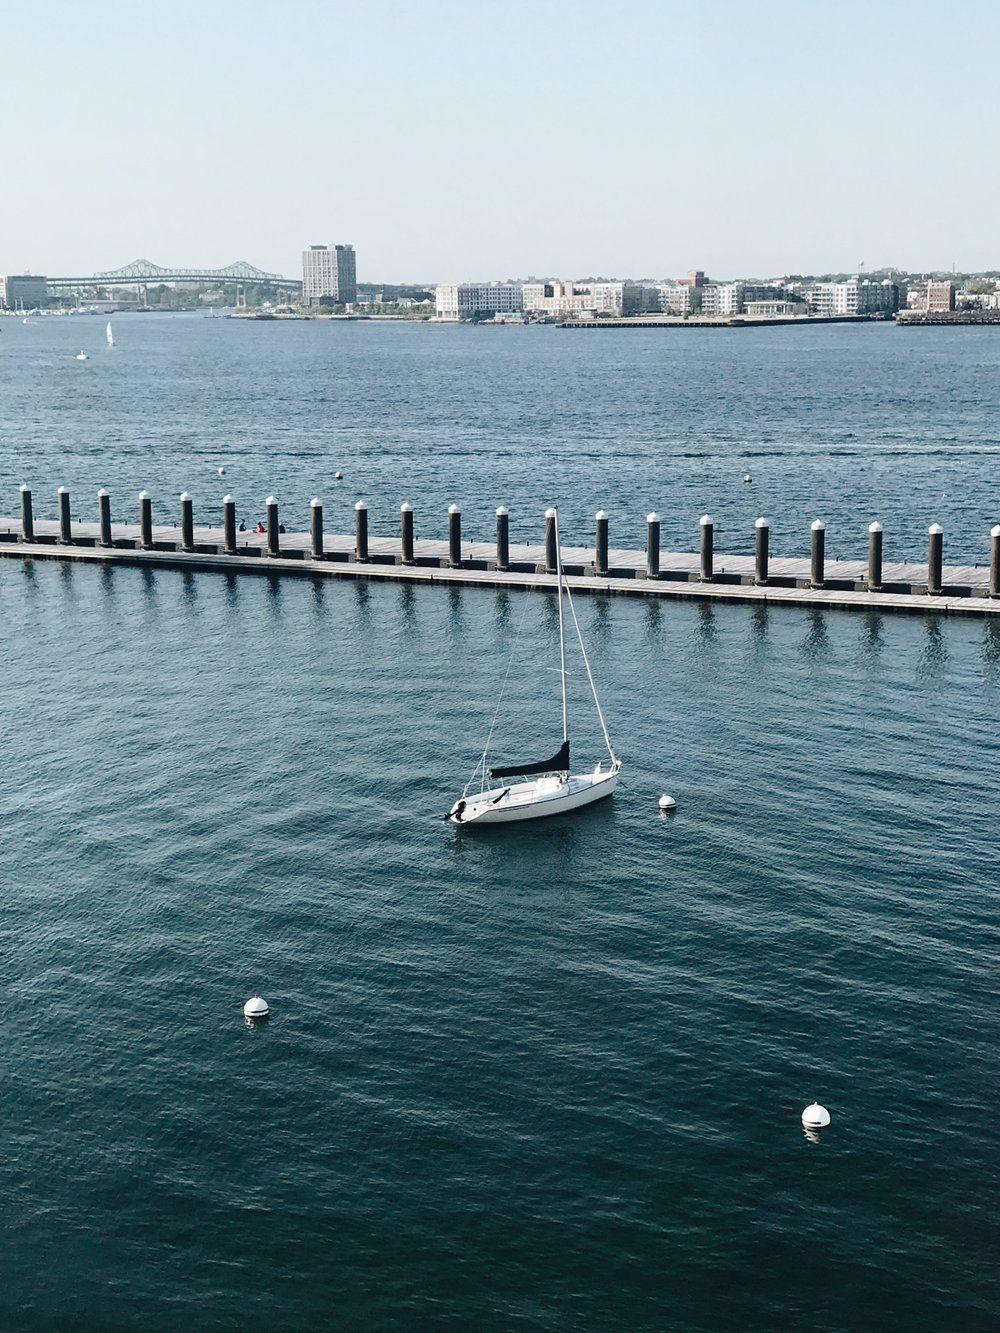 things to do in boston - free things to do in boston - boston travel guide.